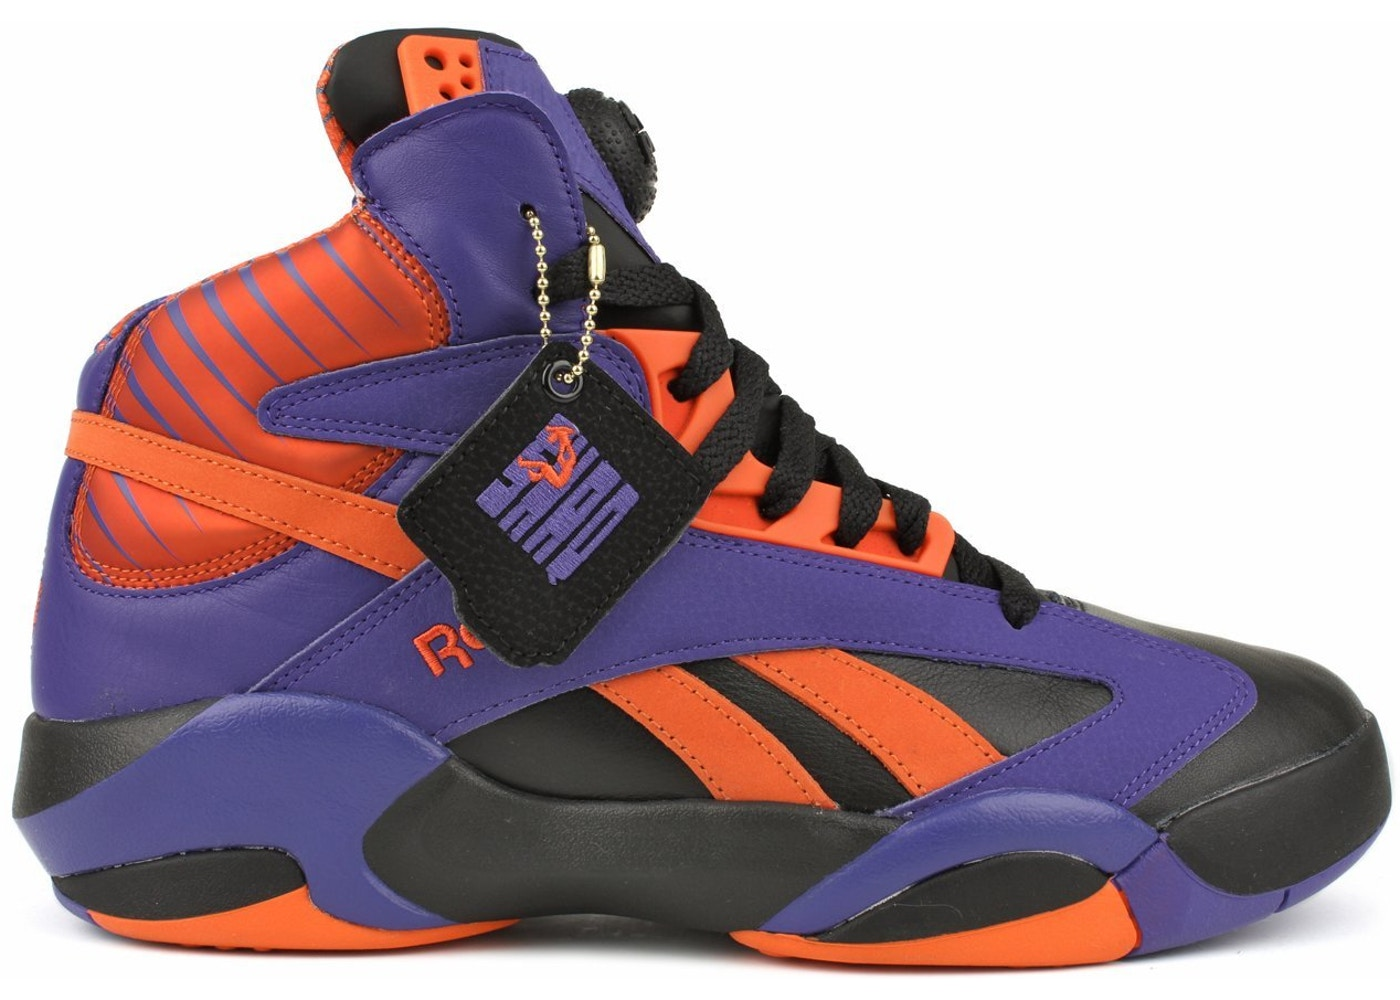 b0c9c87be78c Reebok Shaq Attaq Big Shaqtus - V61029